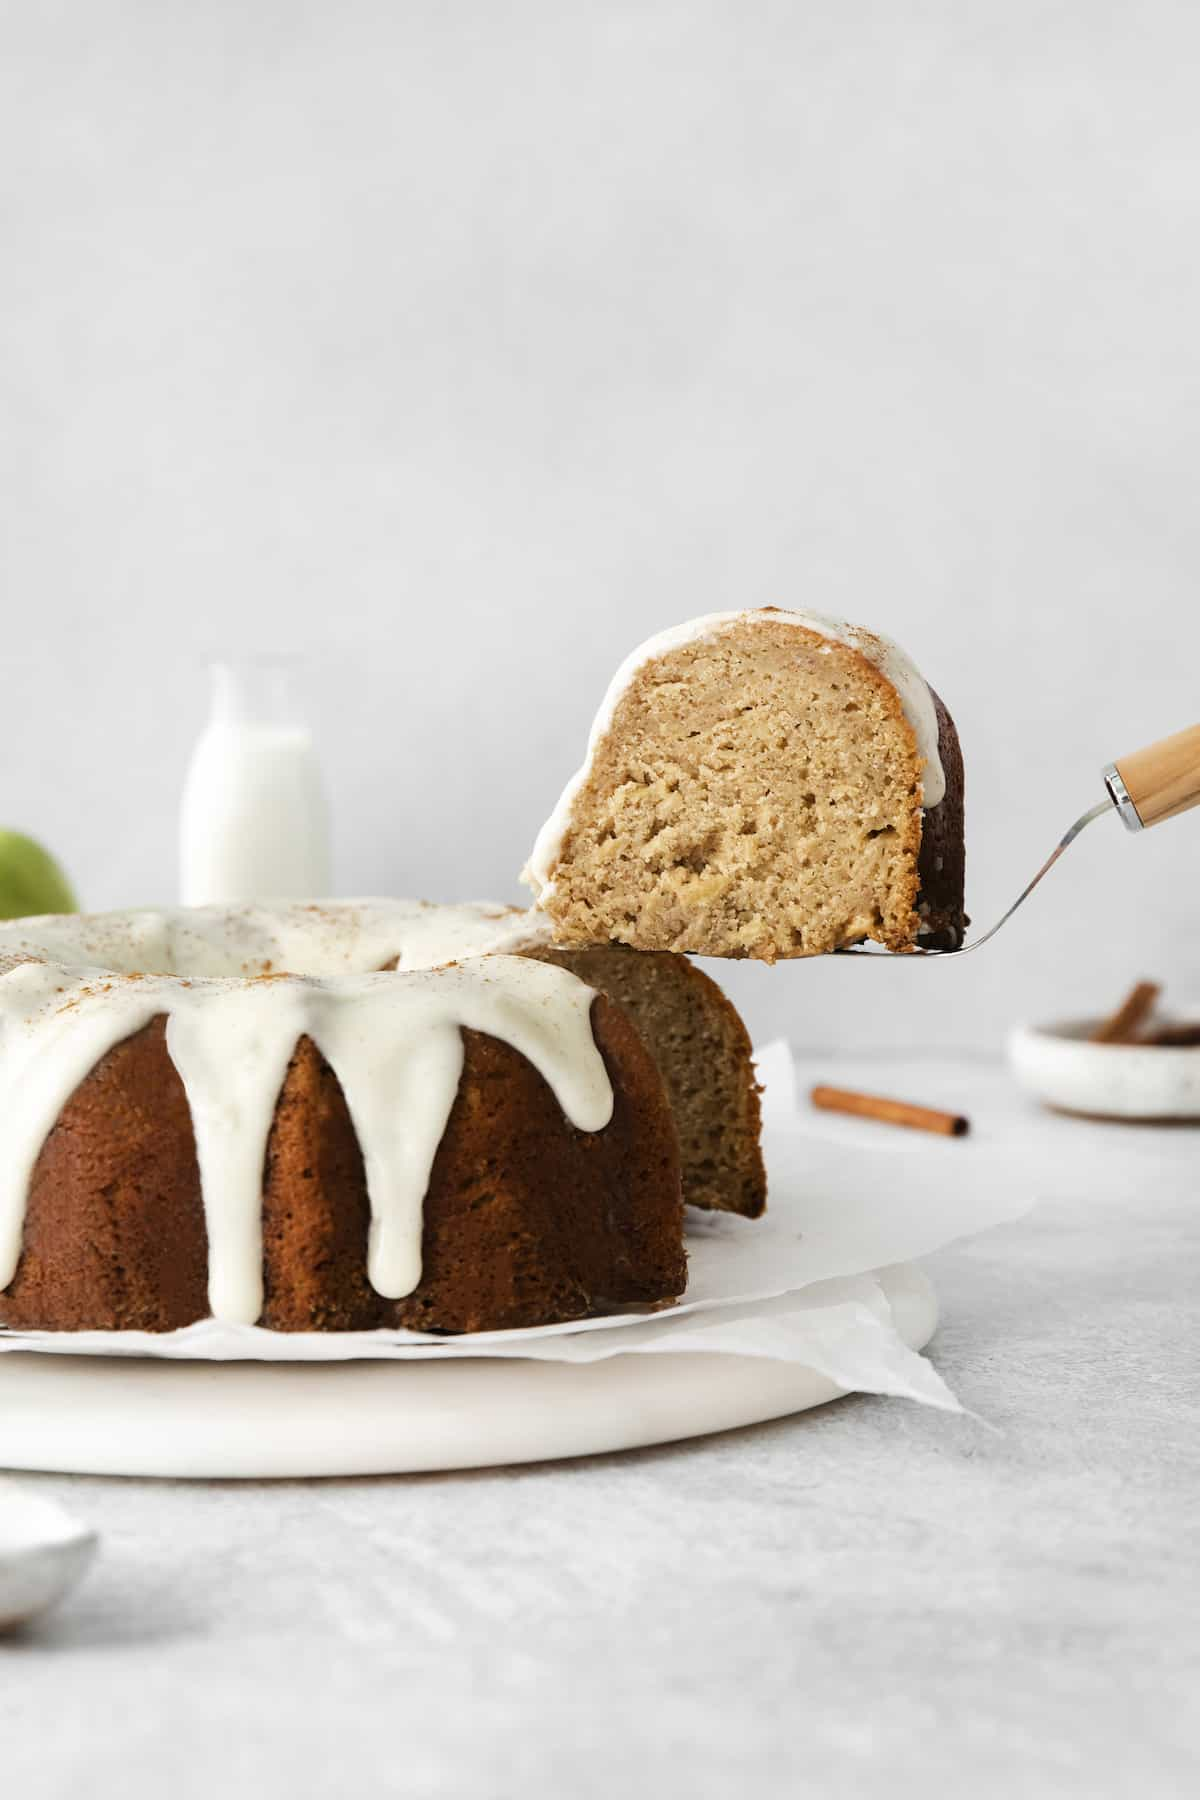 An apple bundt cake with a slice on a serving utensil